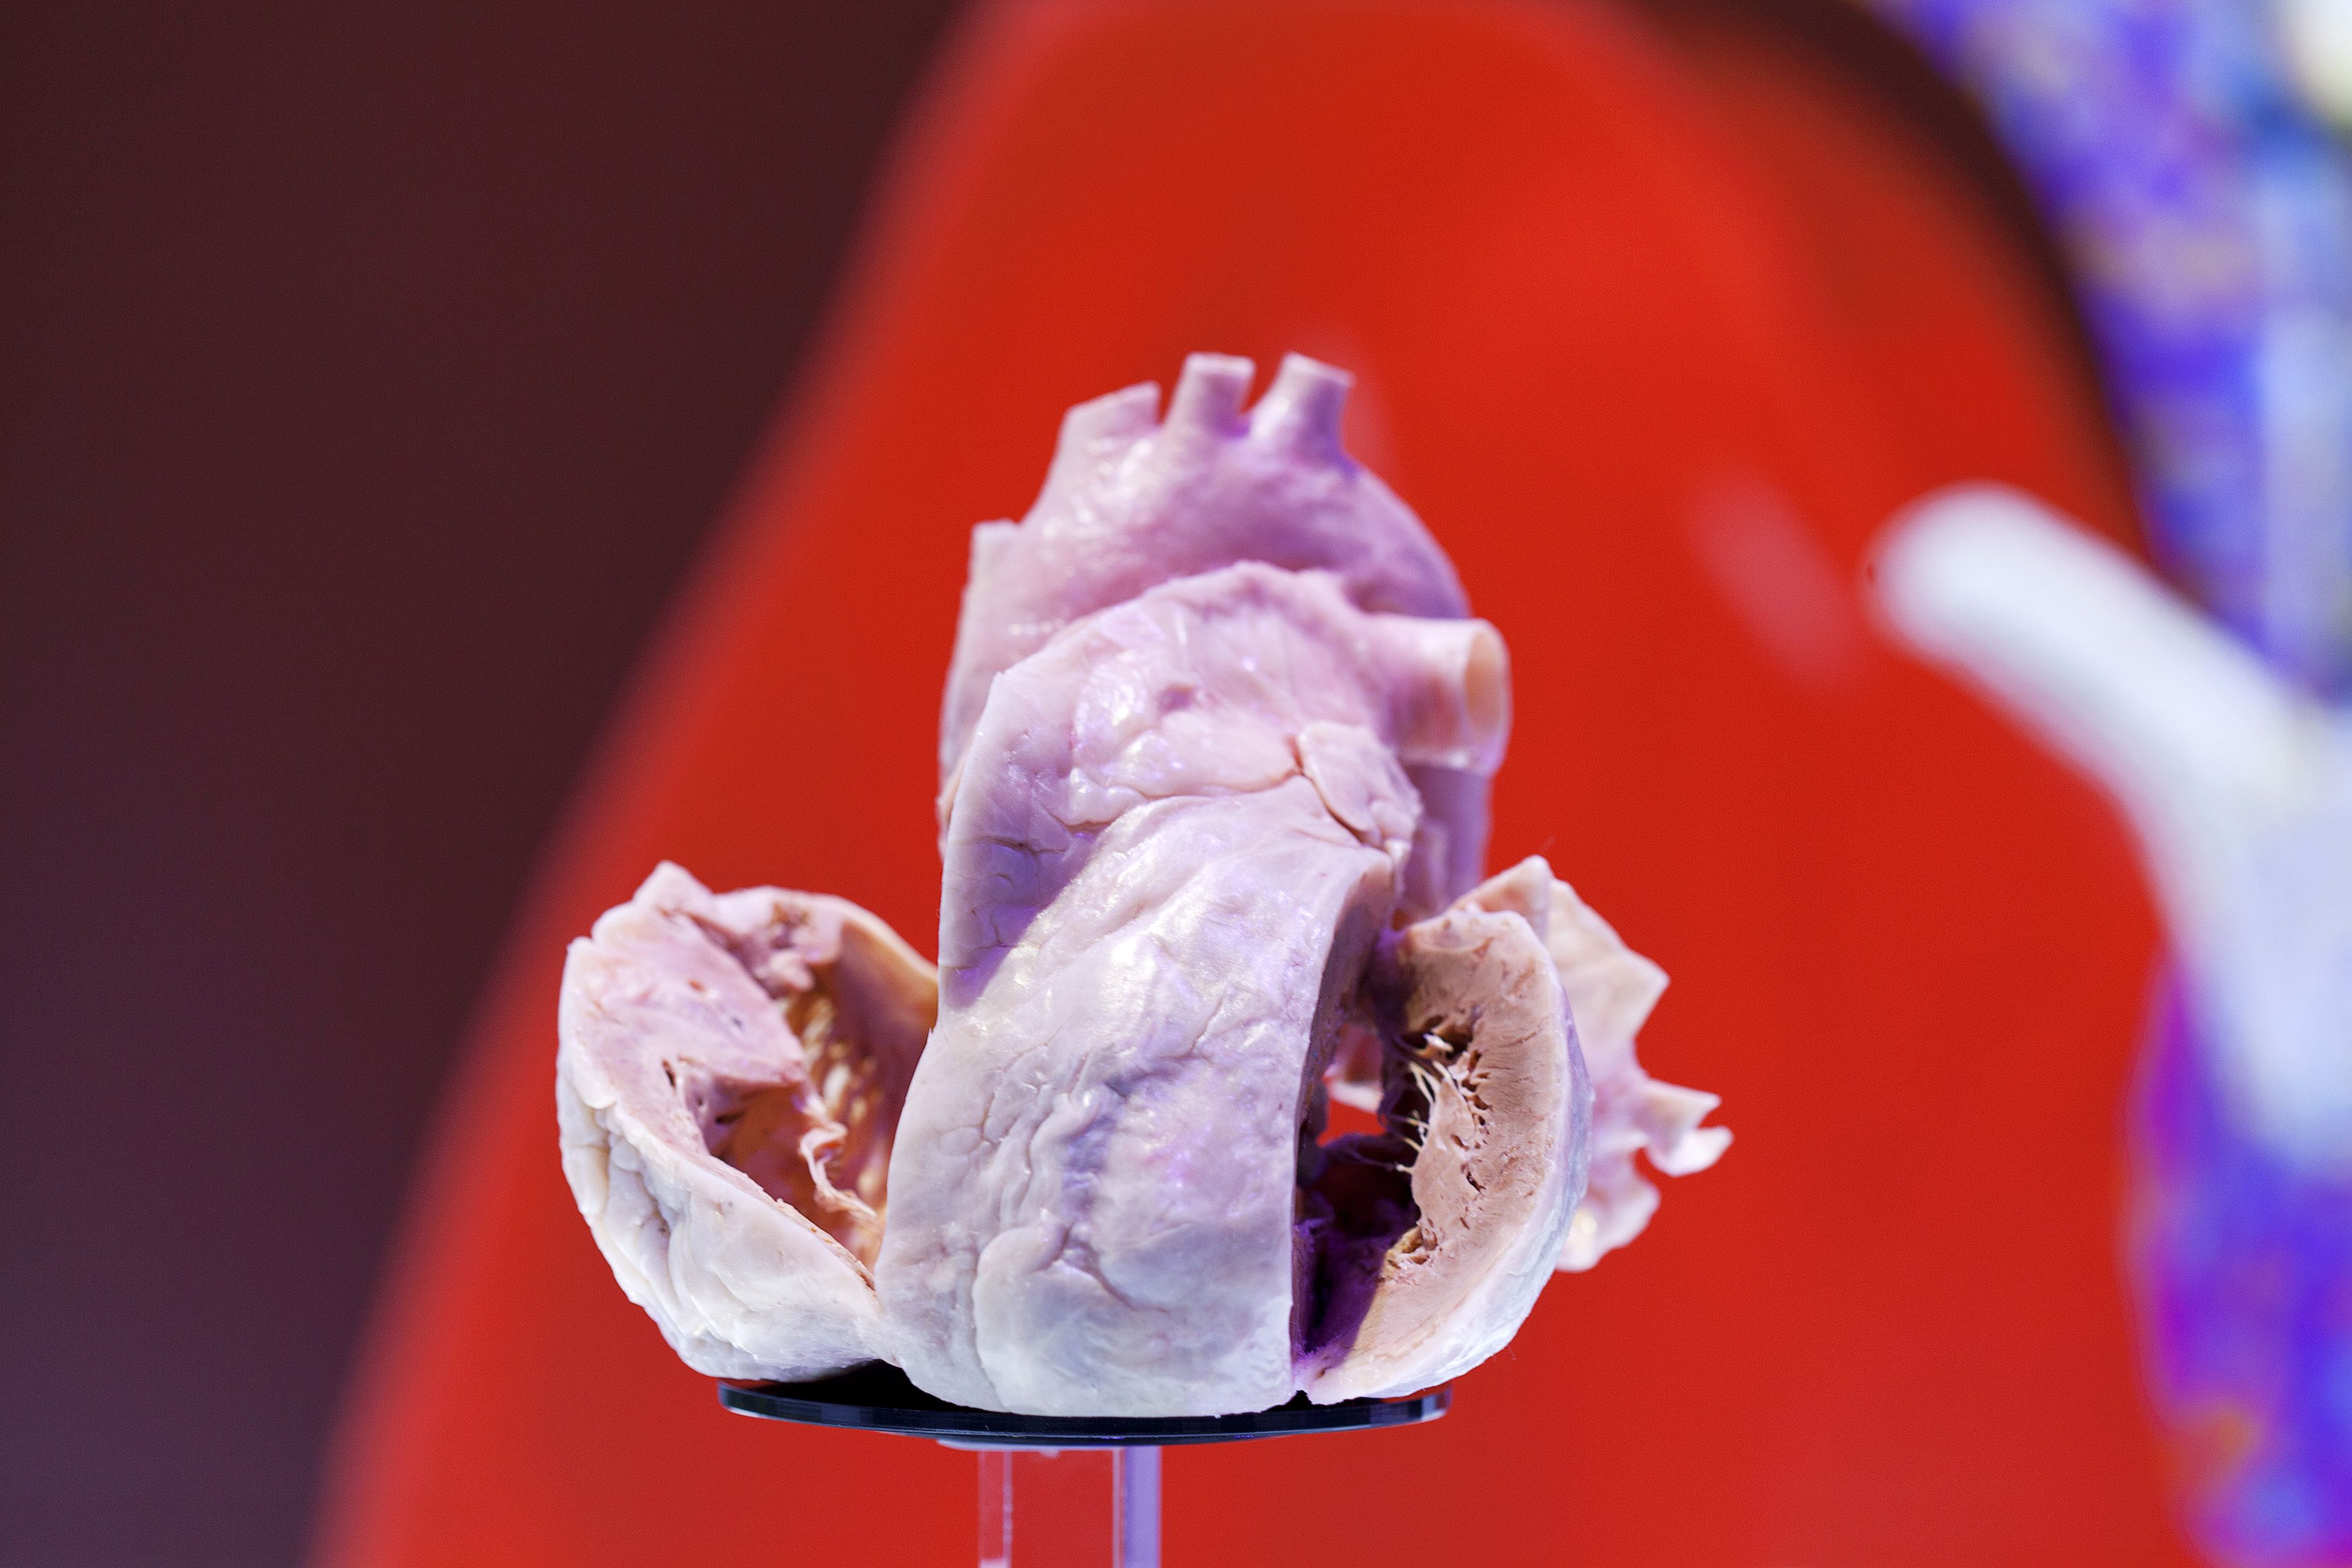 Heart attack patients who received one-fourth of the ...